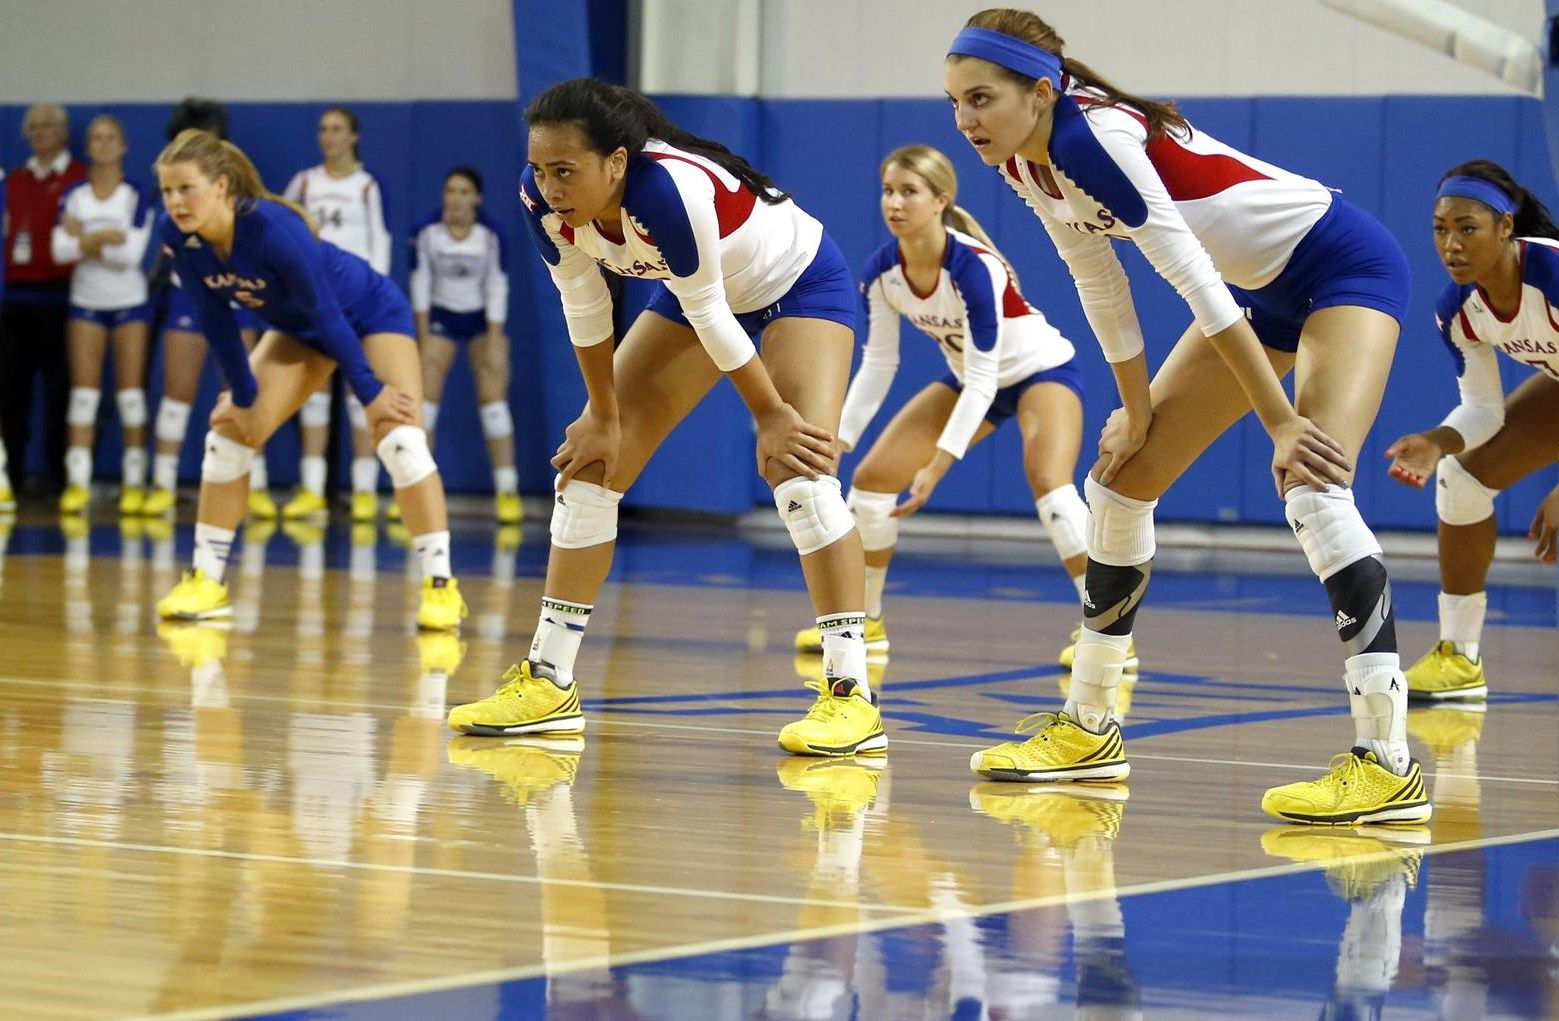 2015 Ku Volleyball Schedule Google Search Volleyball Basketball Court Sports